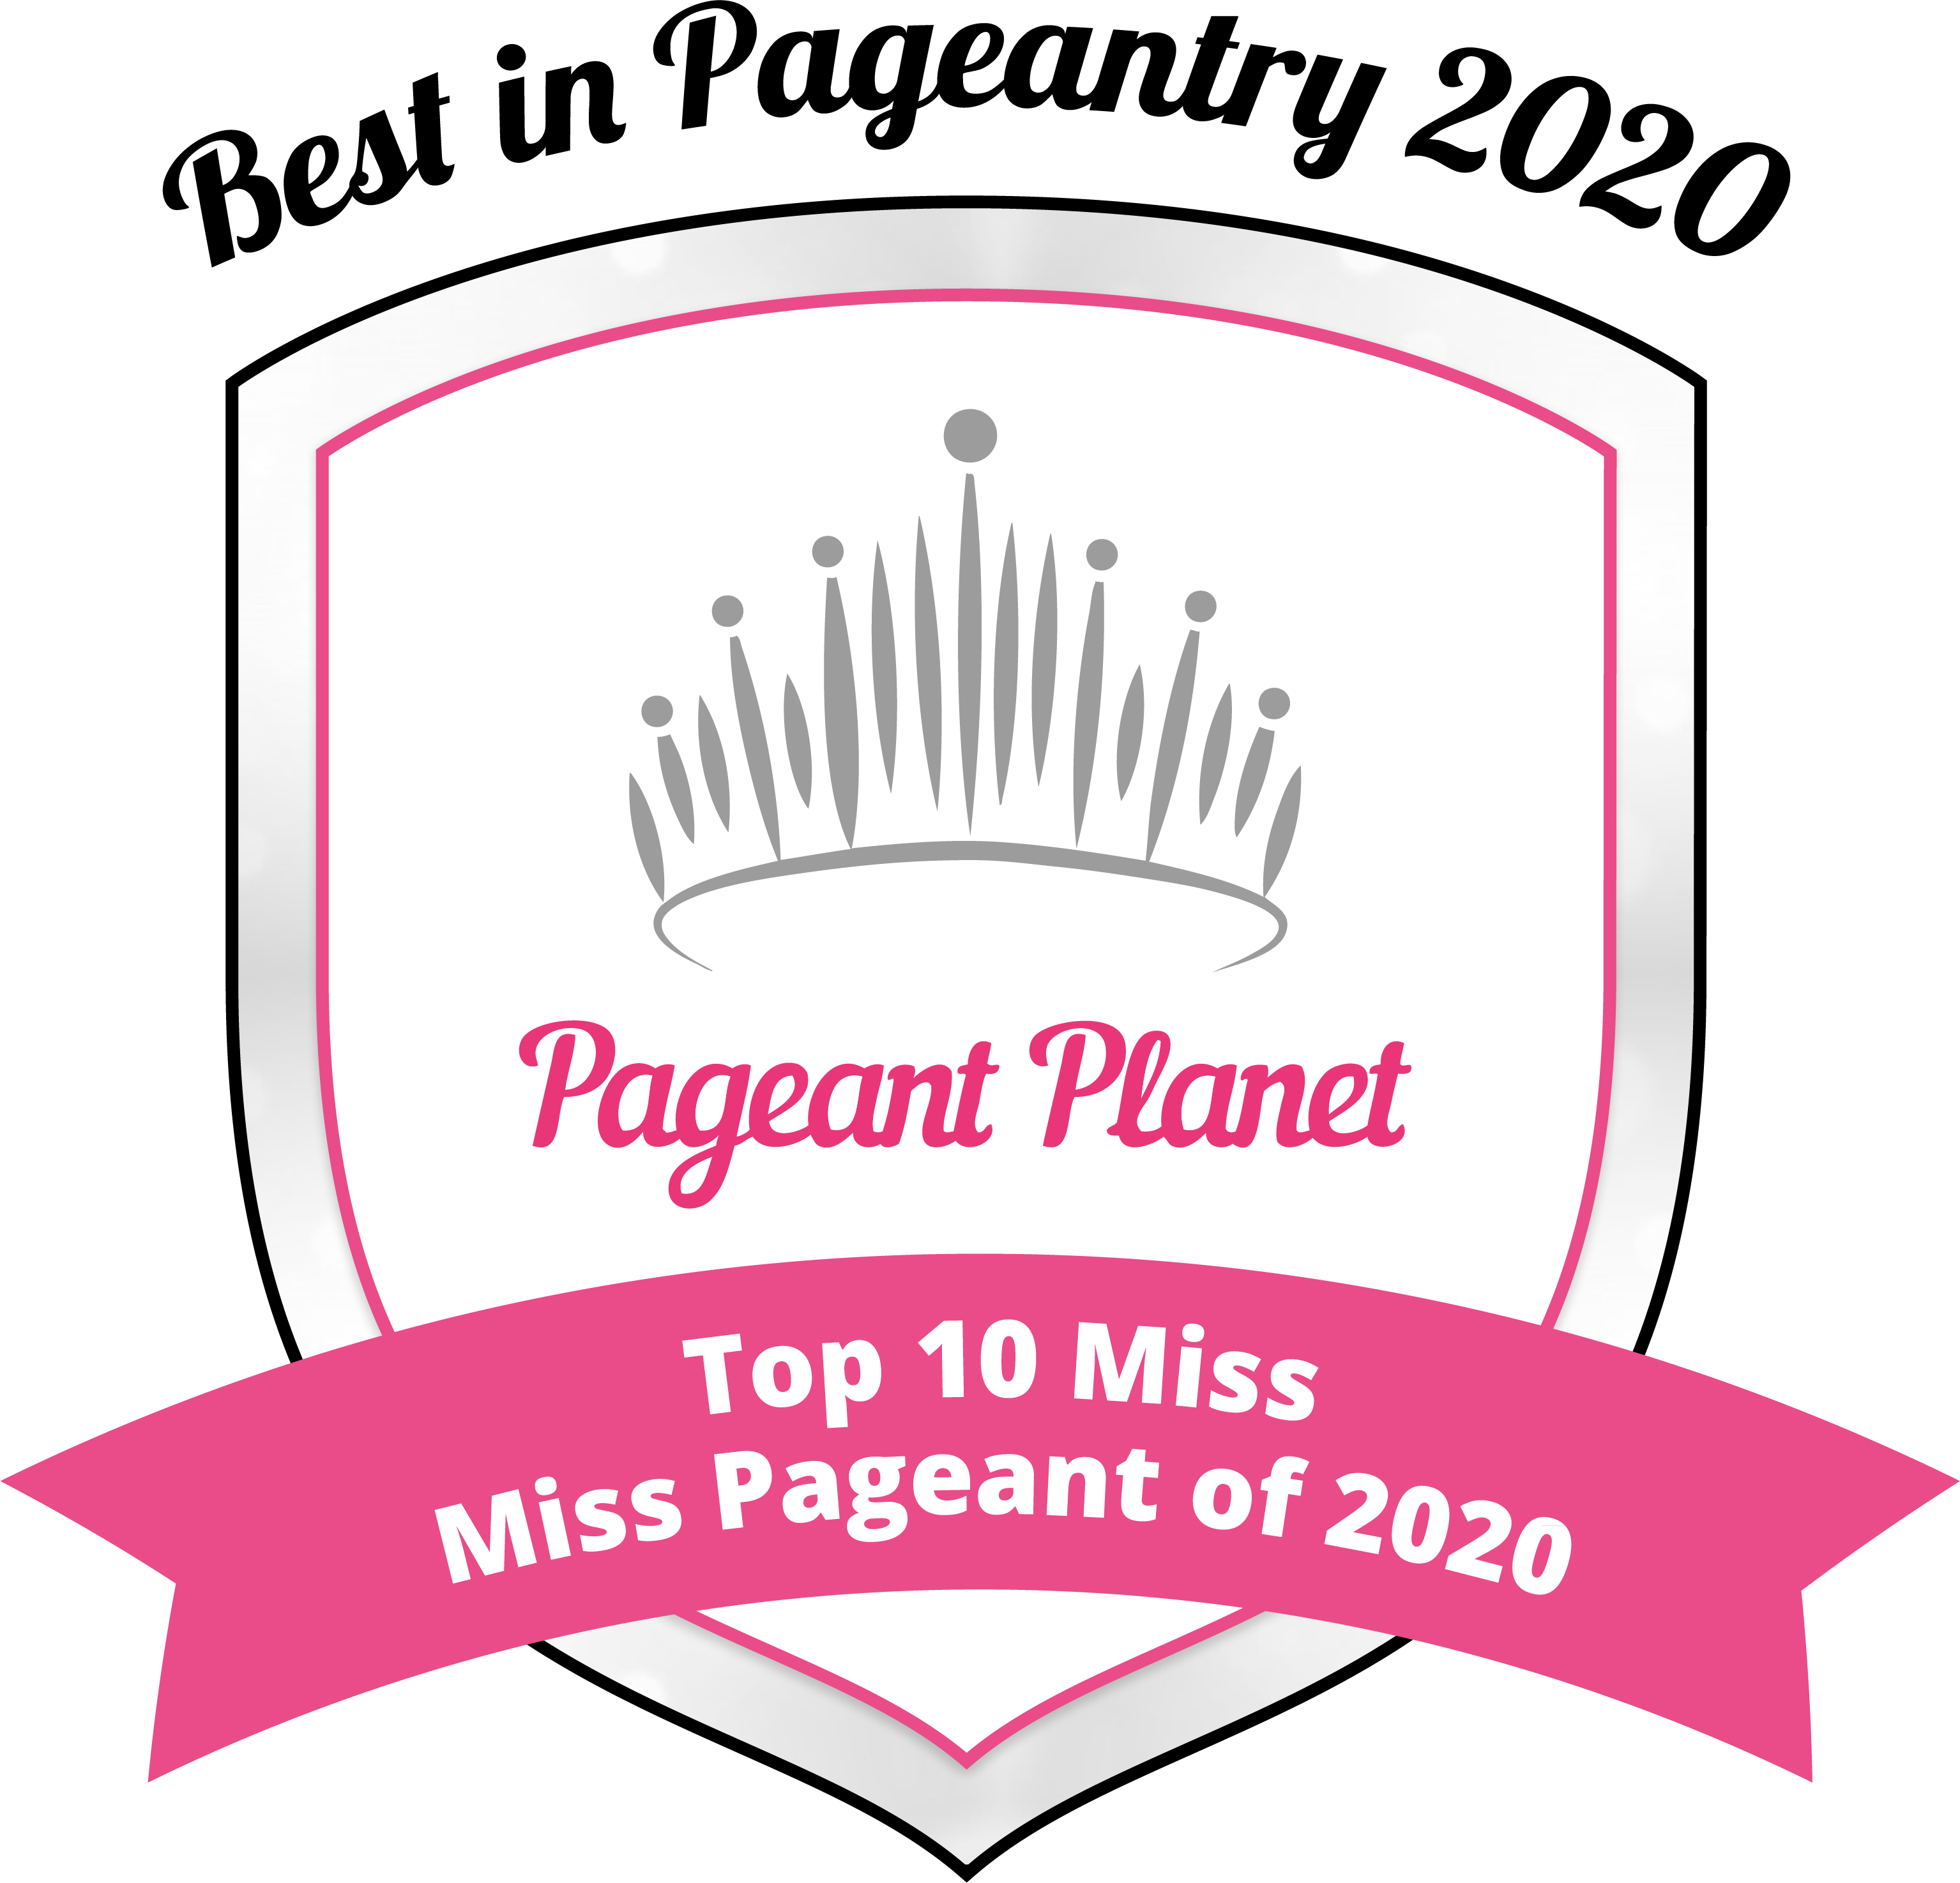 Top 10 Miss Pageant of 2020